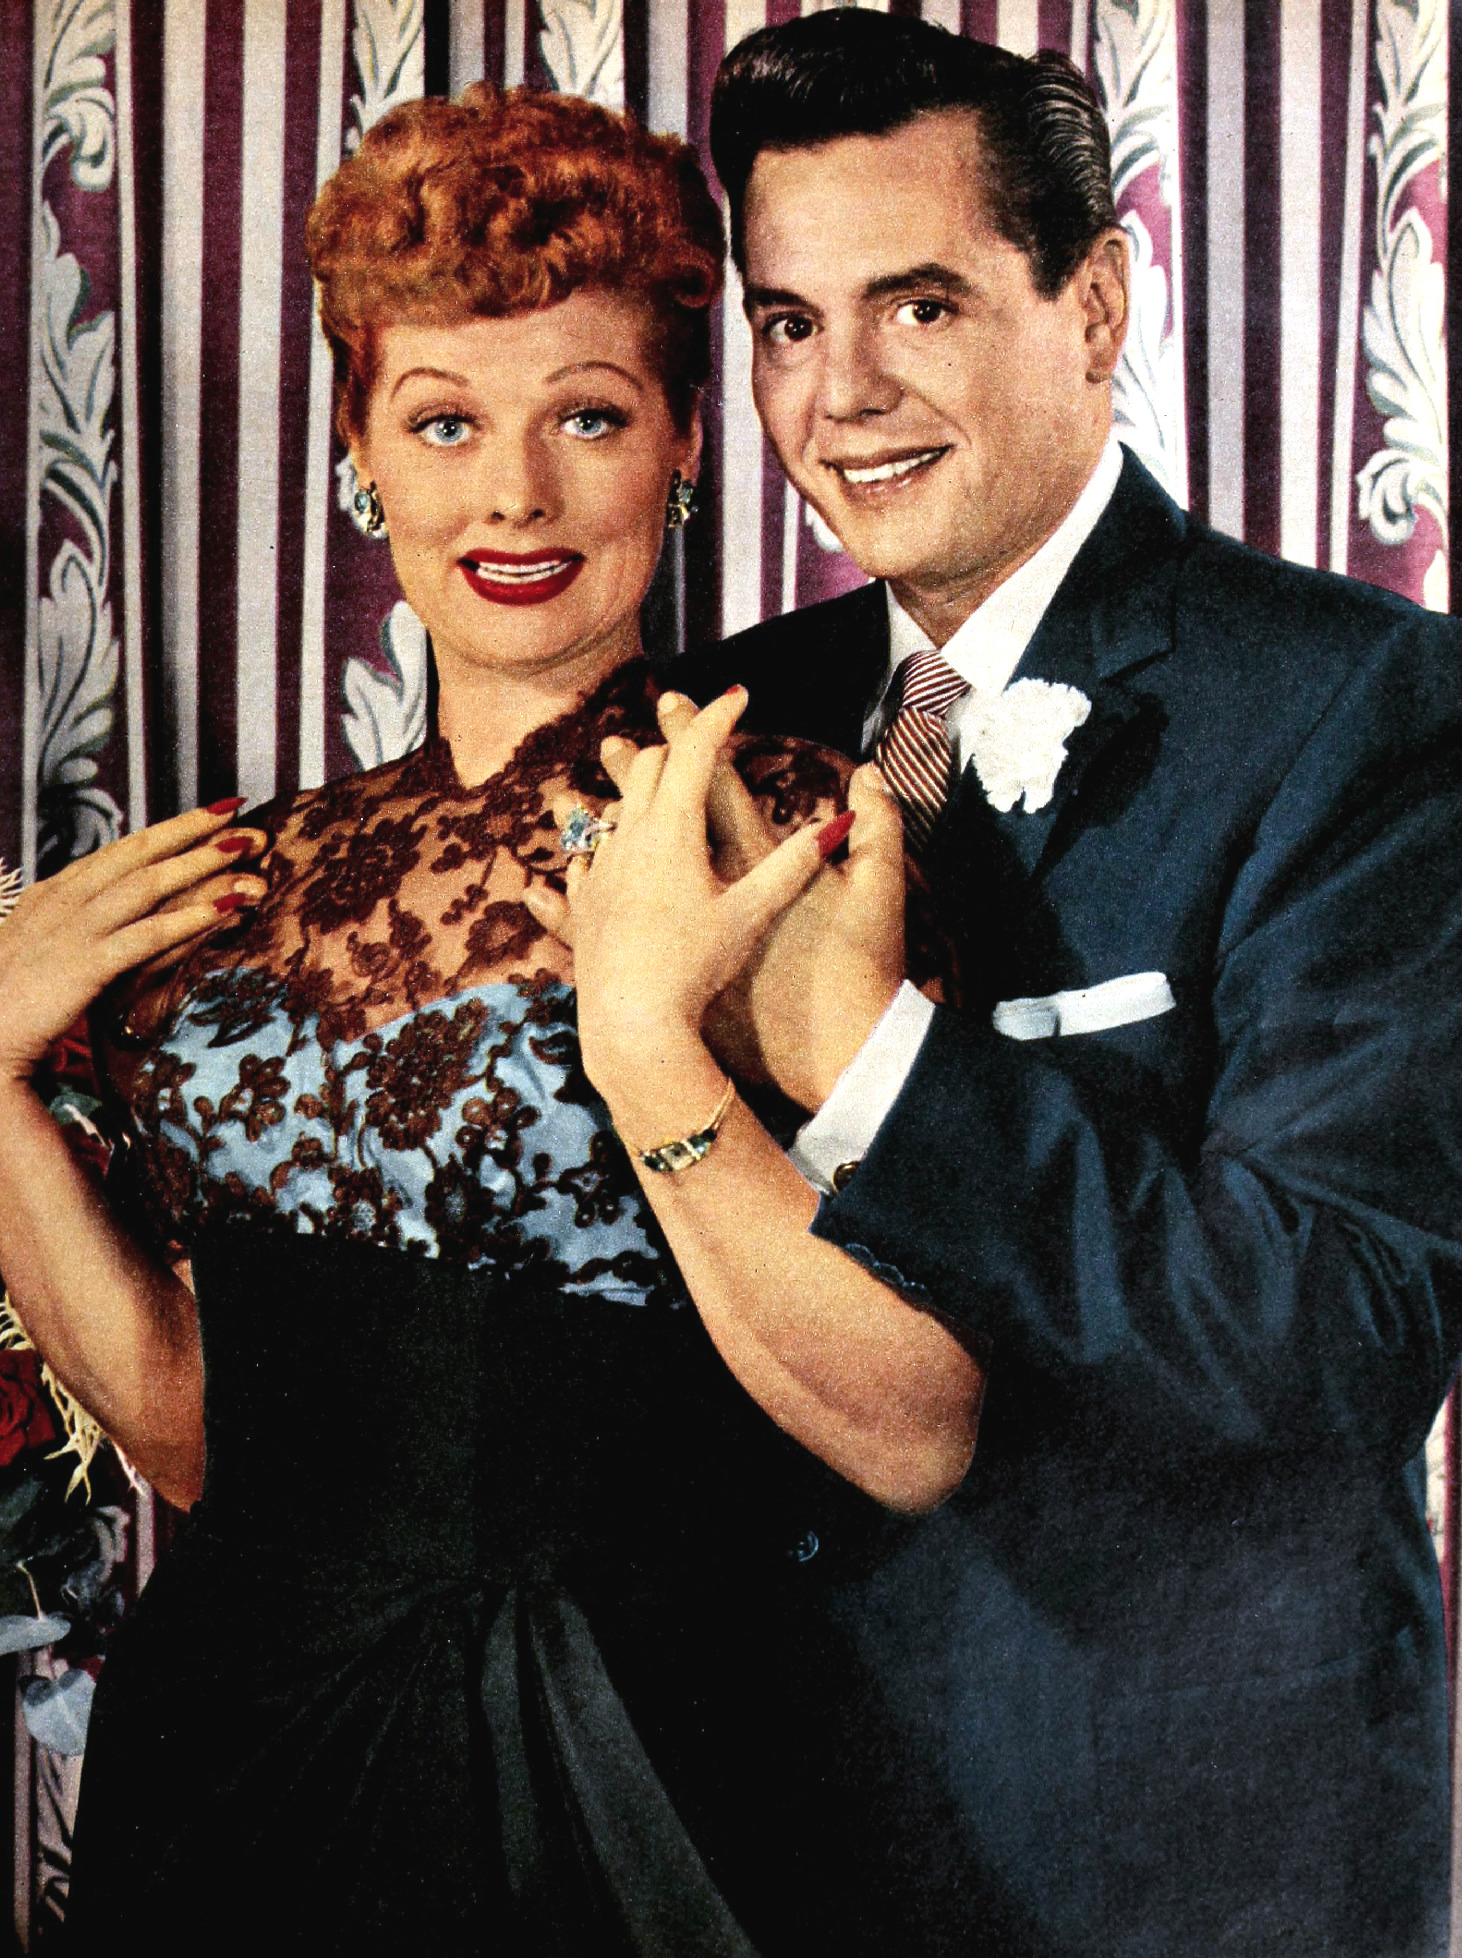 the life career and death of lucille ball Lucille desiree ball was born on august 6, 1911 in jamestown, ny her father, henry, died when she was three years old, so she was raised by her mother, desiree, a concert pianist, and her maternal grandparents.